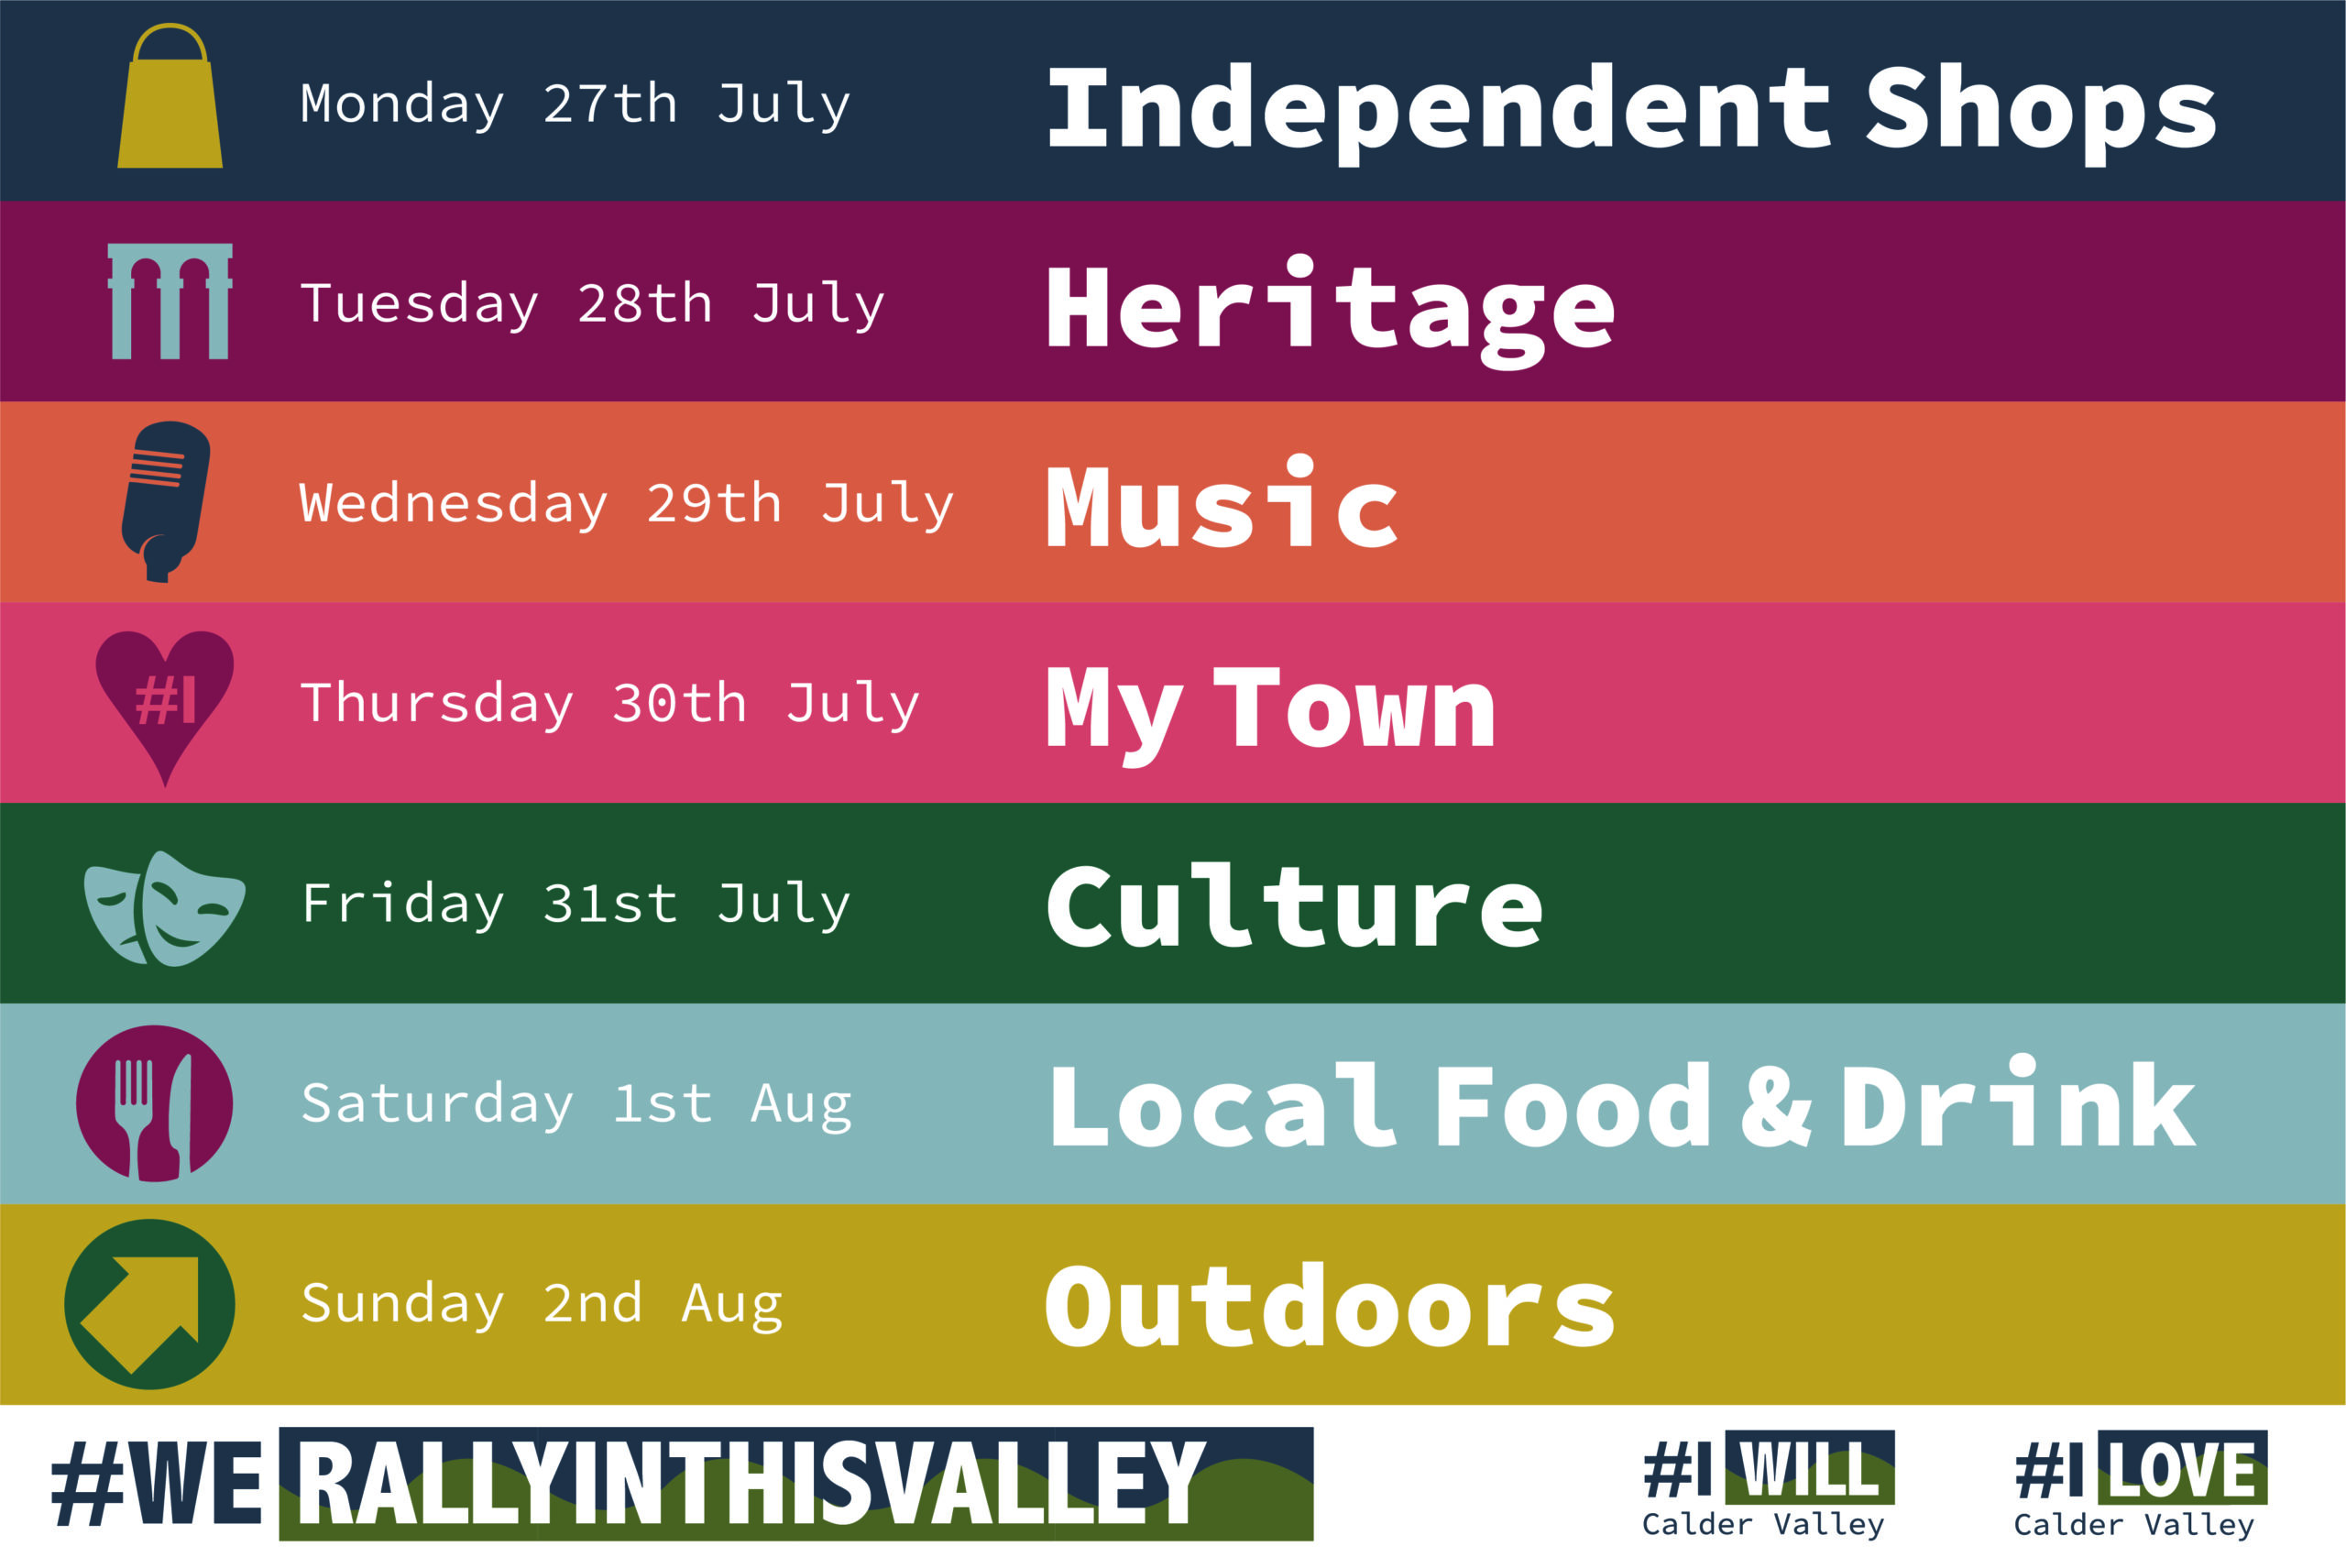 I LOVE & I WILL, Celebrate the Calder Valley 27 July to 2 August